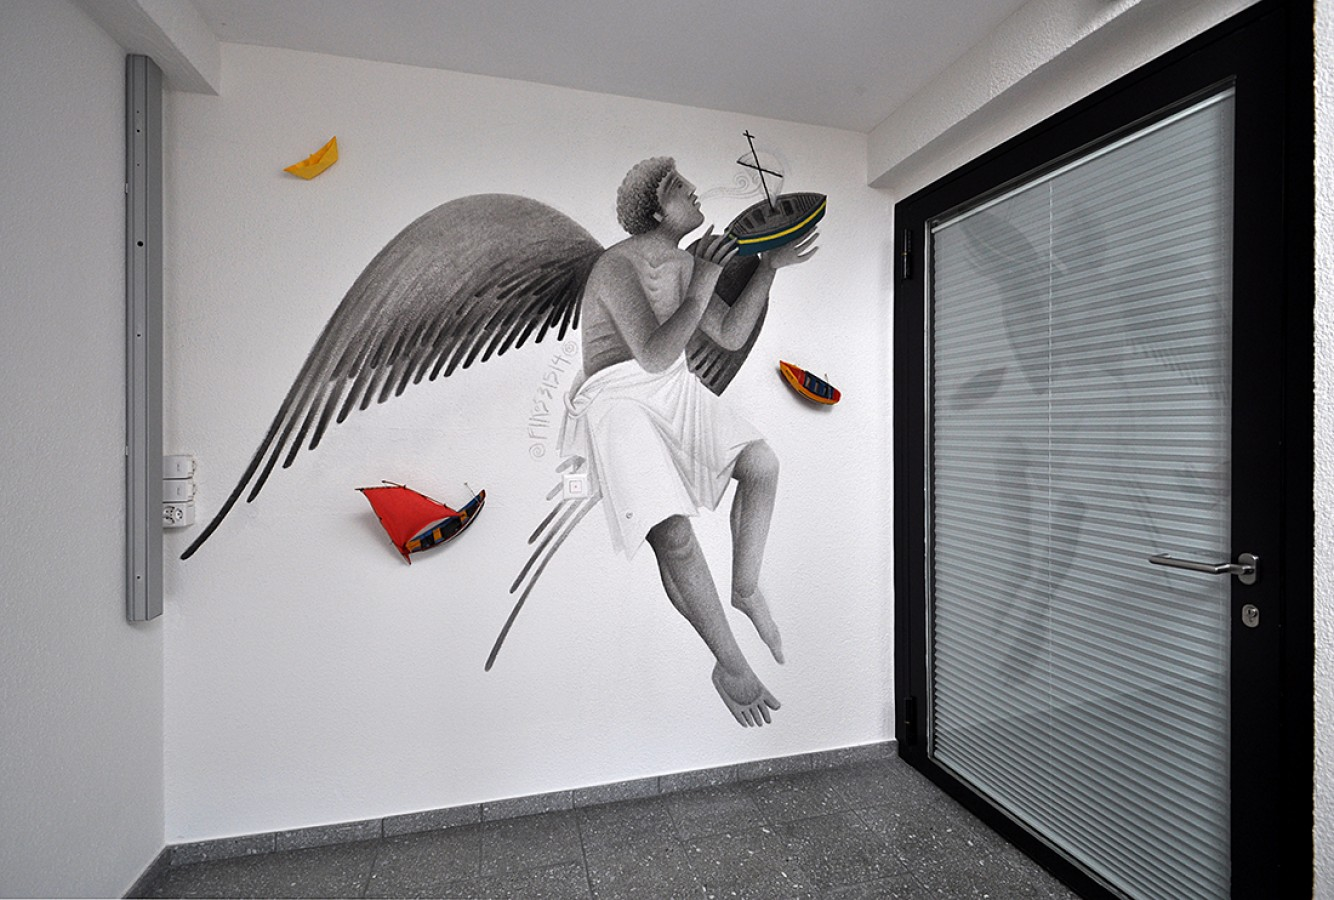 fikos-antonios-new-murals-at-eth-zurich-16